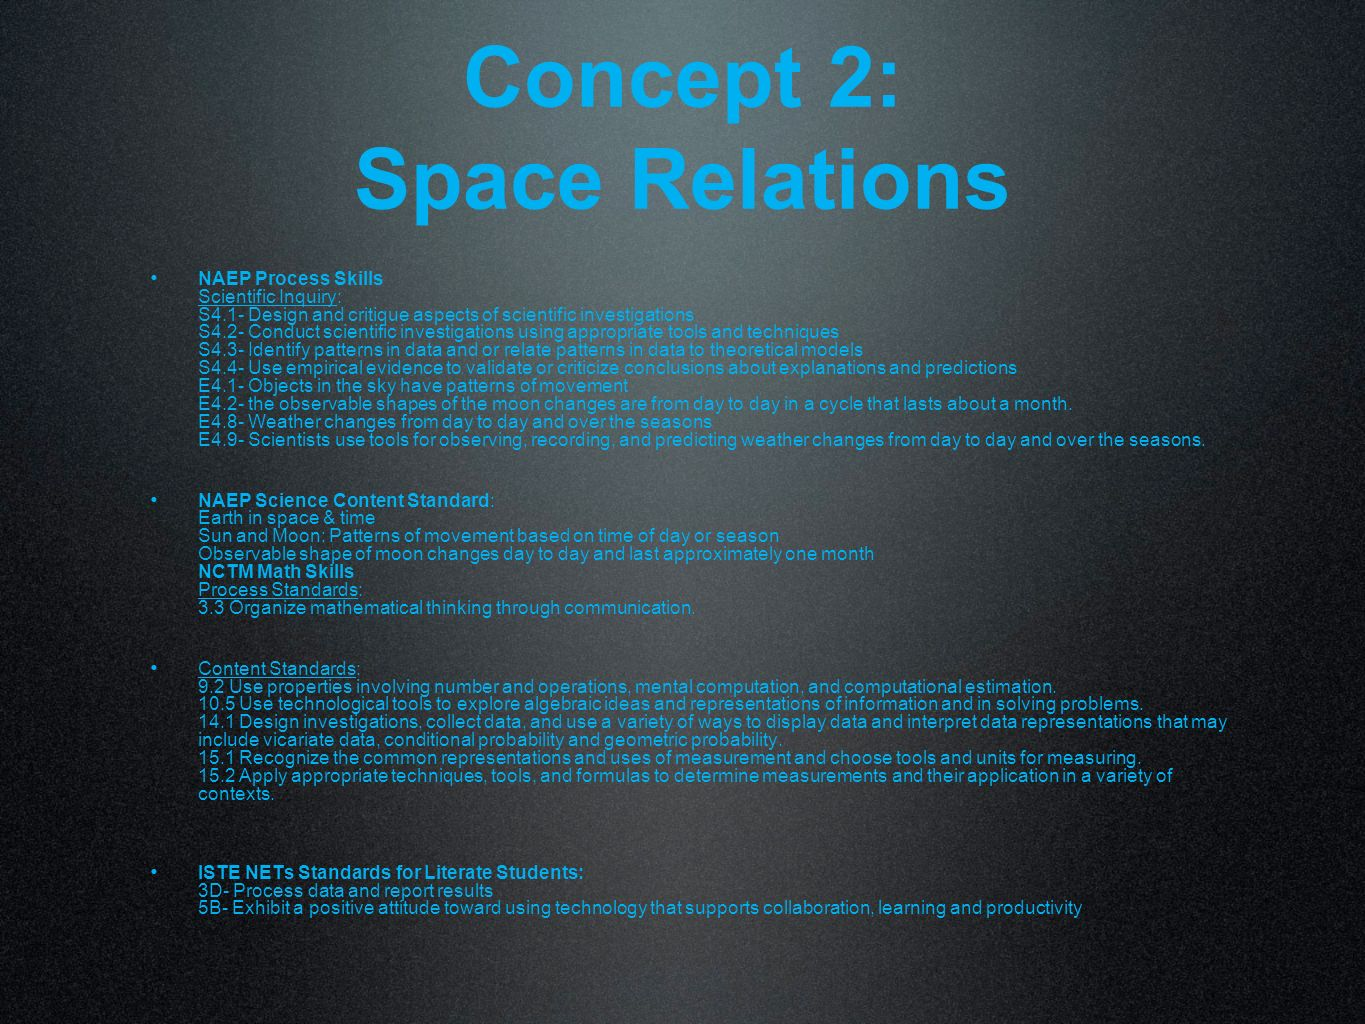 Concept 2: Space Relations